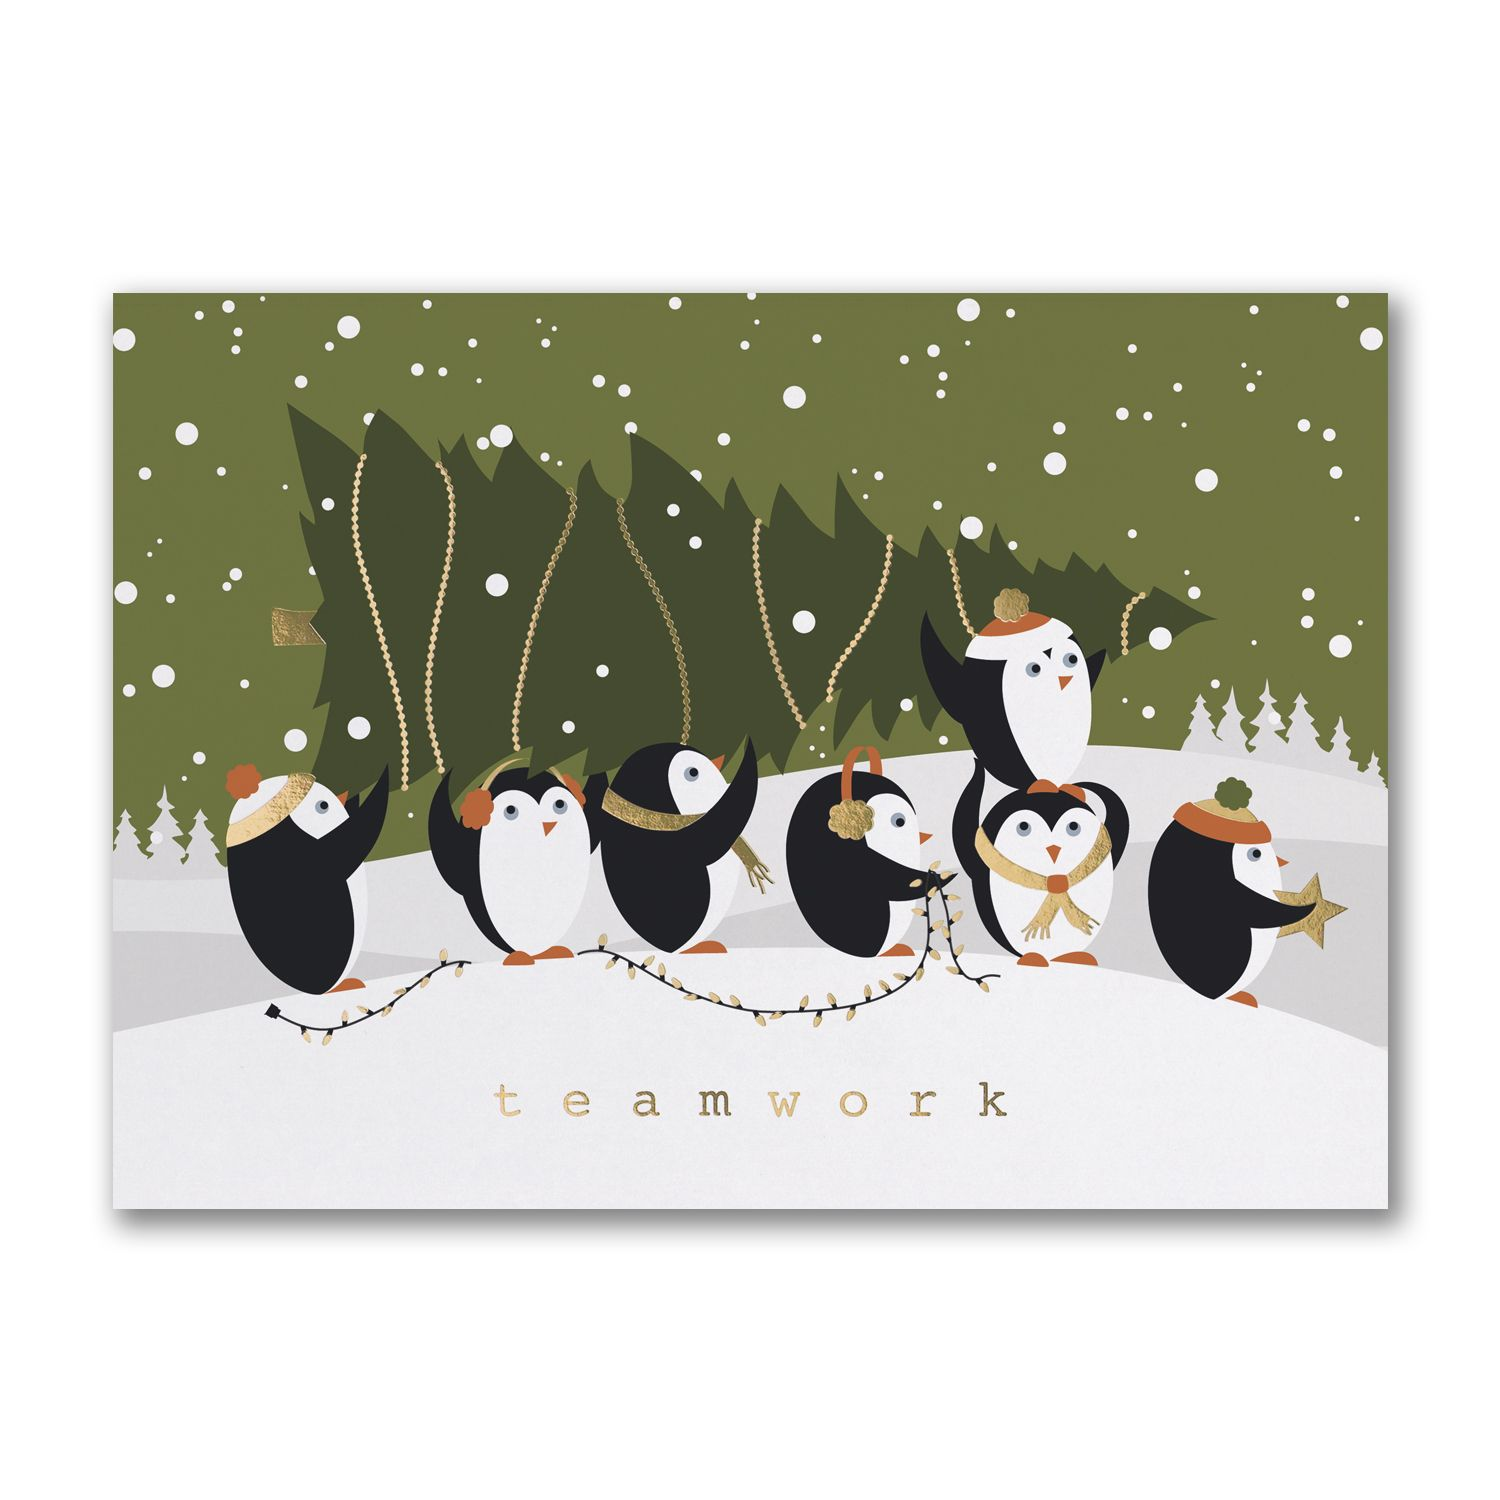 Pulling Together Teamwork Personalized Holiday Cards Http